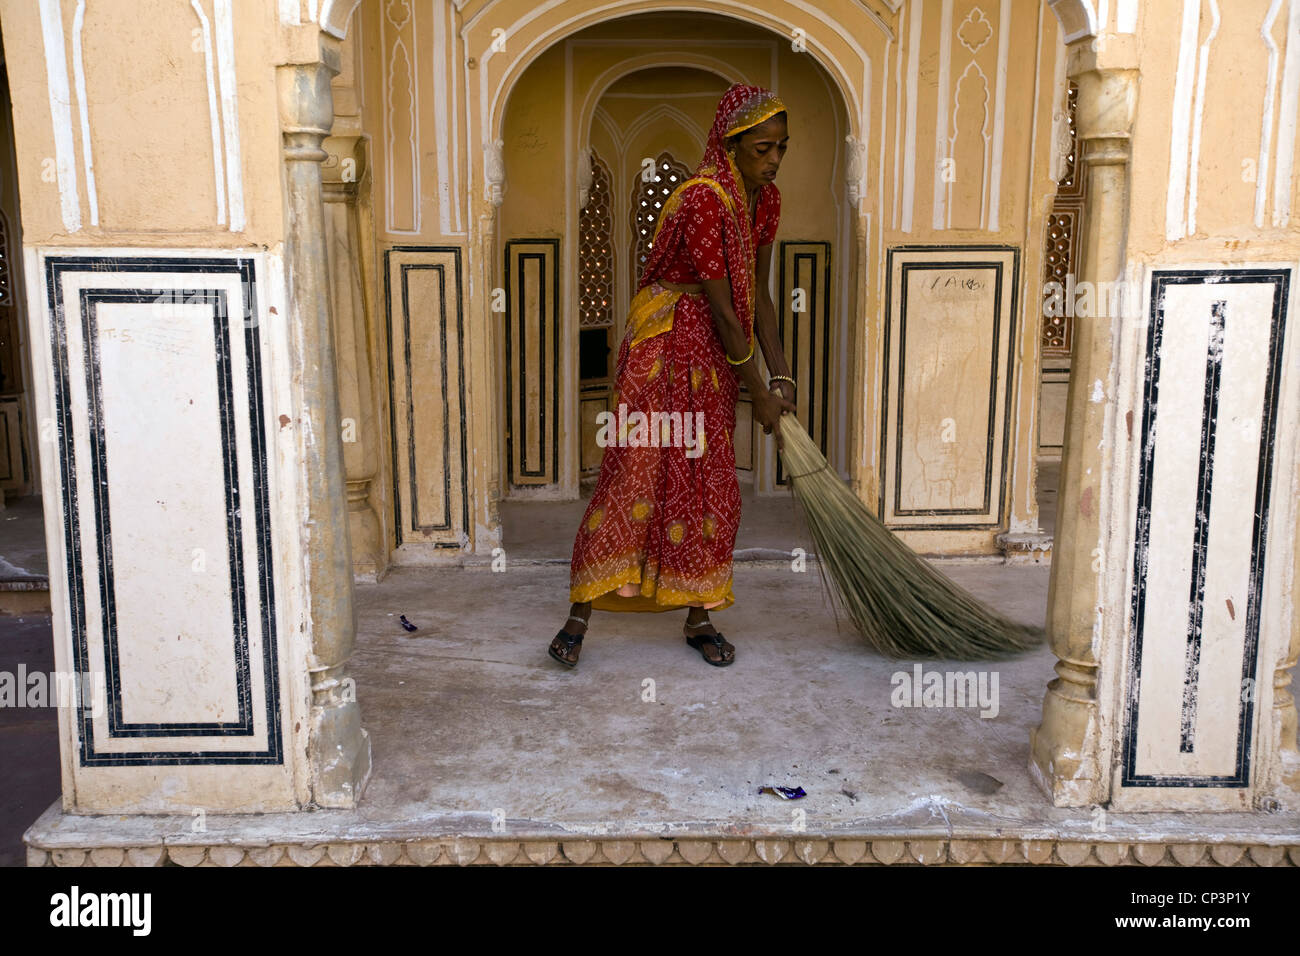 A woman sweeps The Hawa Mahal, known as the Palace of the Winds, Jaipur, Rajasthan, India - Stock Image